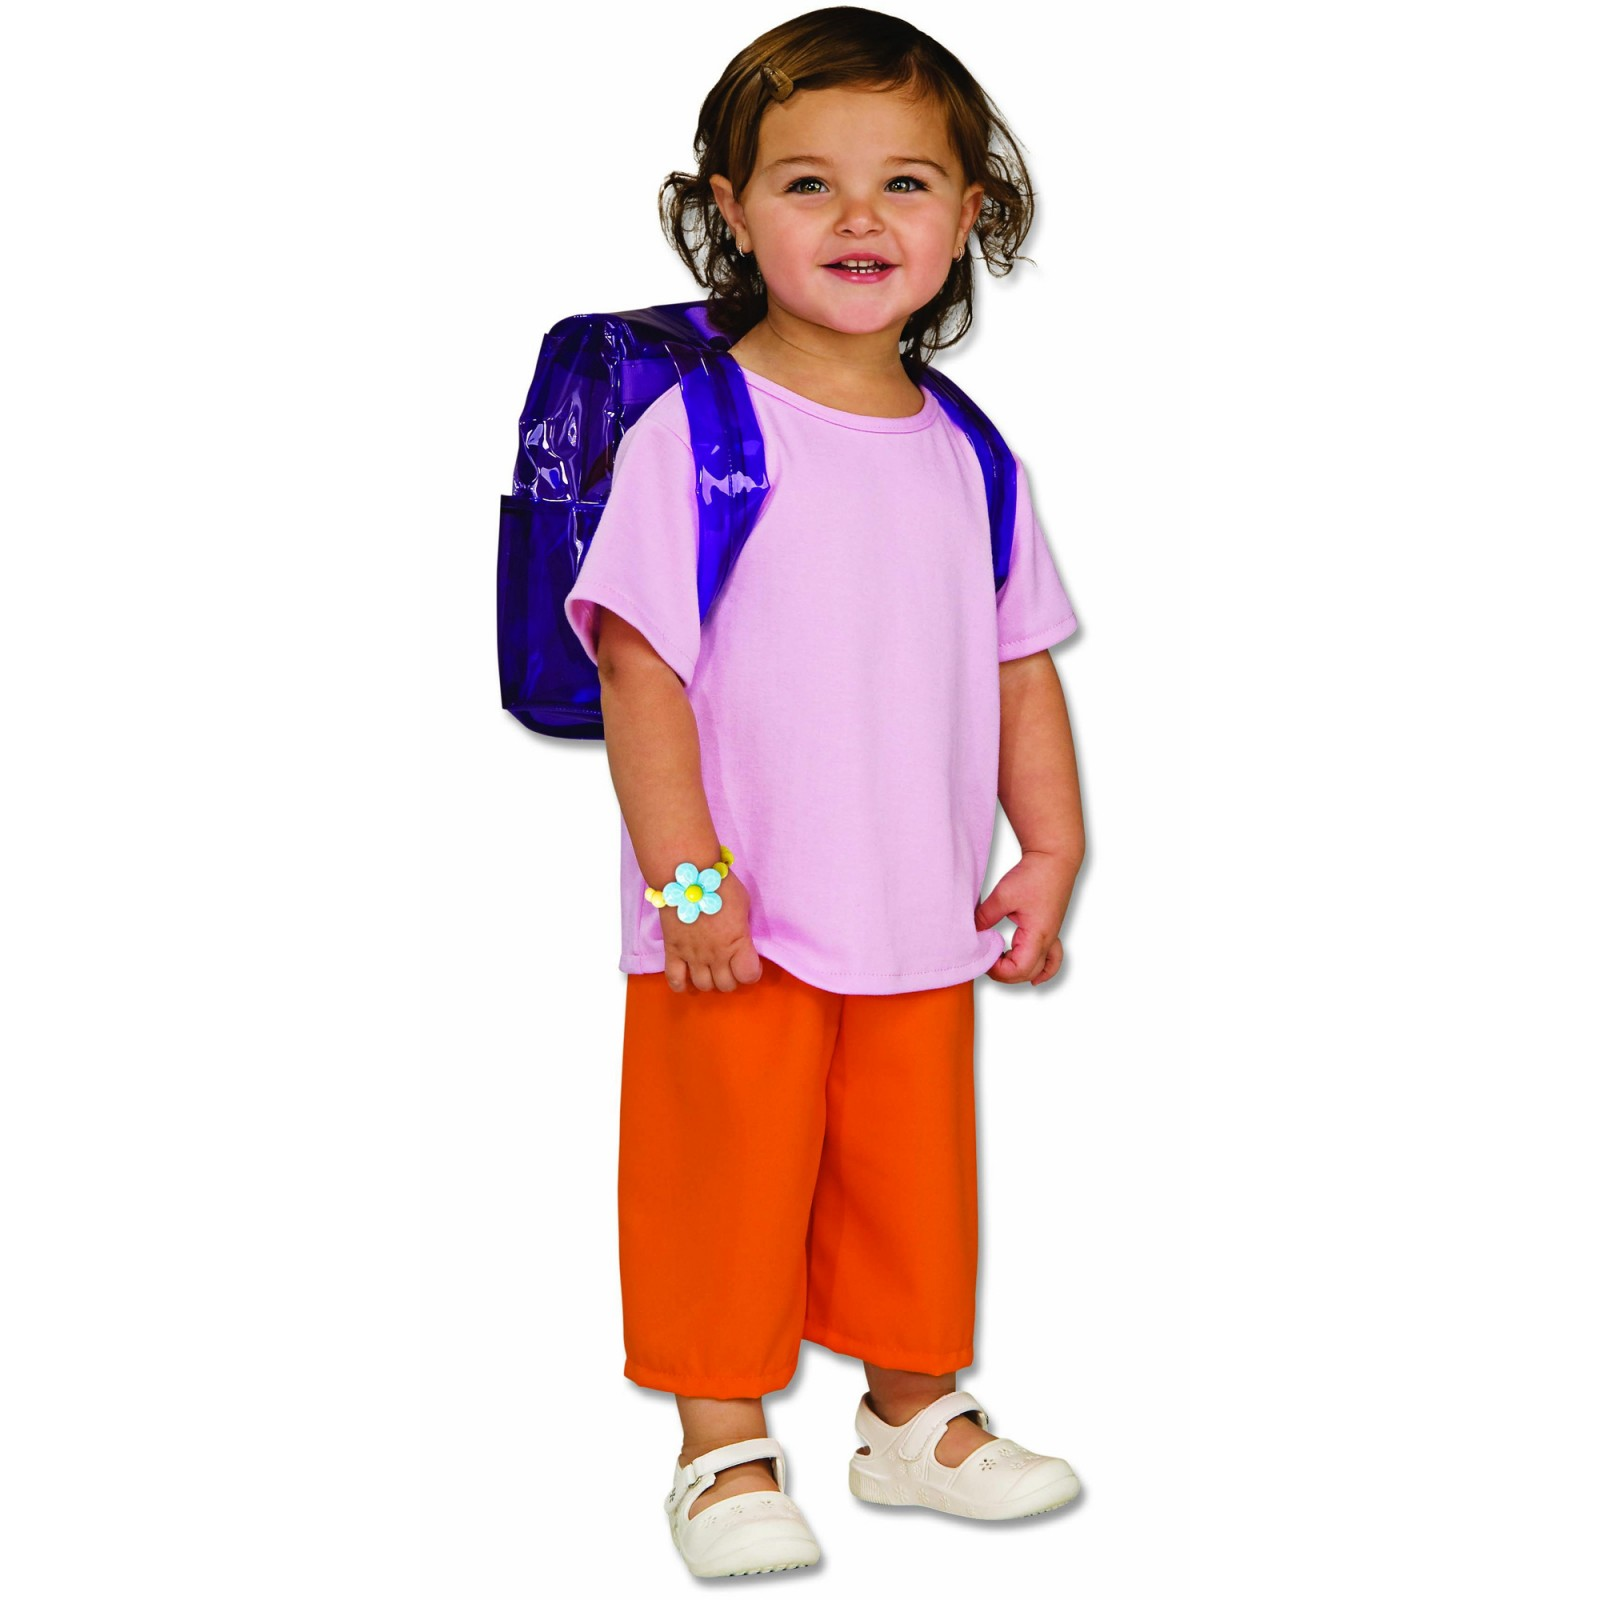 Deluxe Dora the Explorer Toddler Costume by Rubies